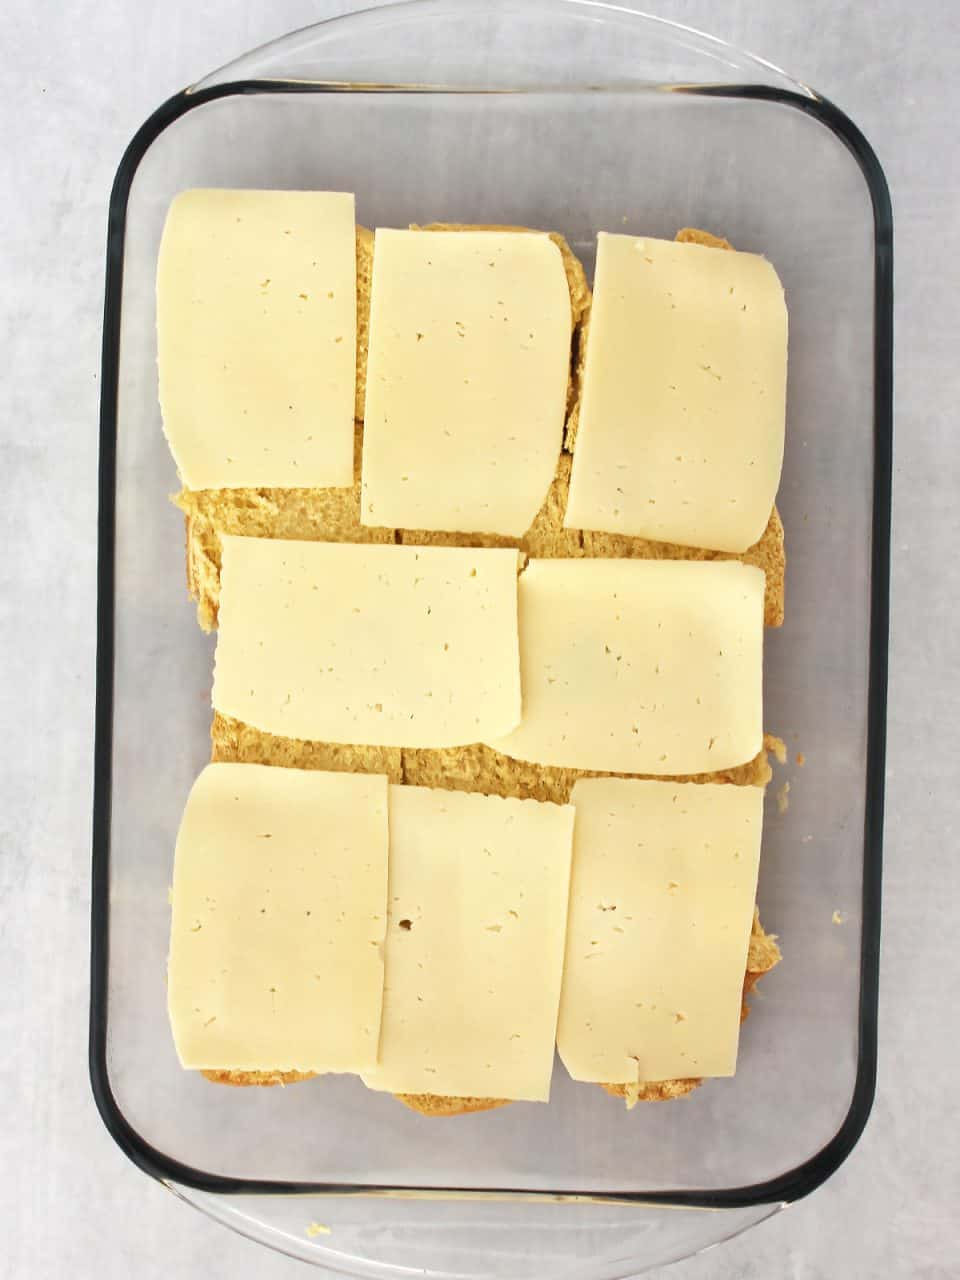 Cheese slices placed on top of the buns.